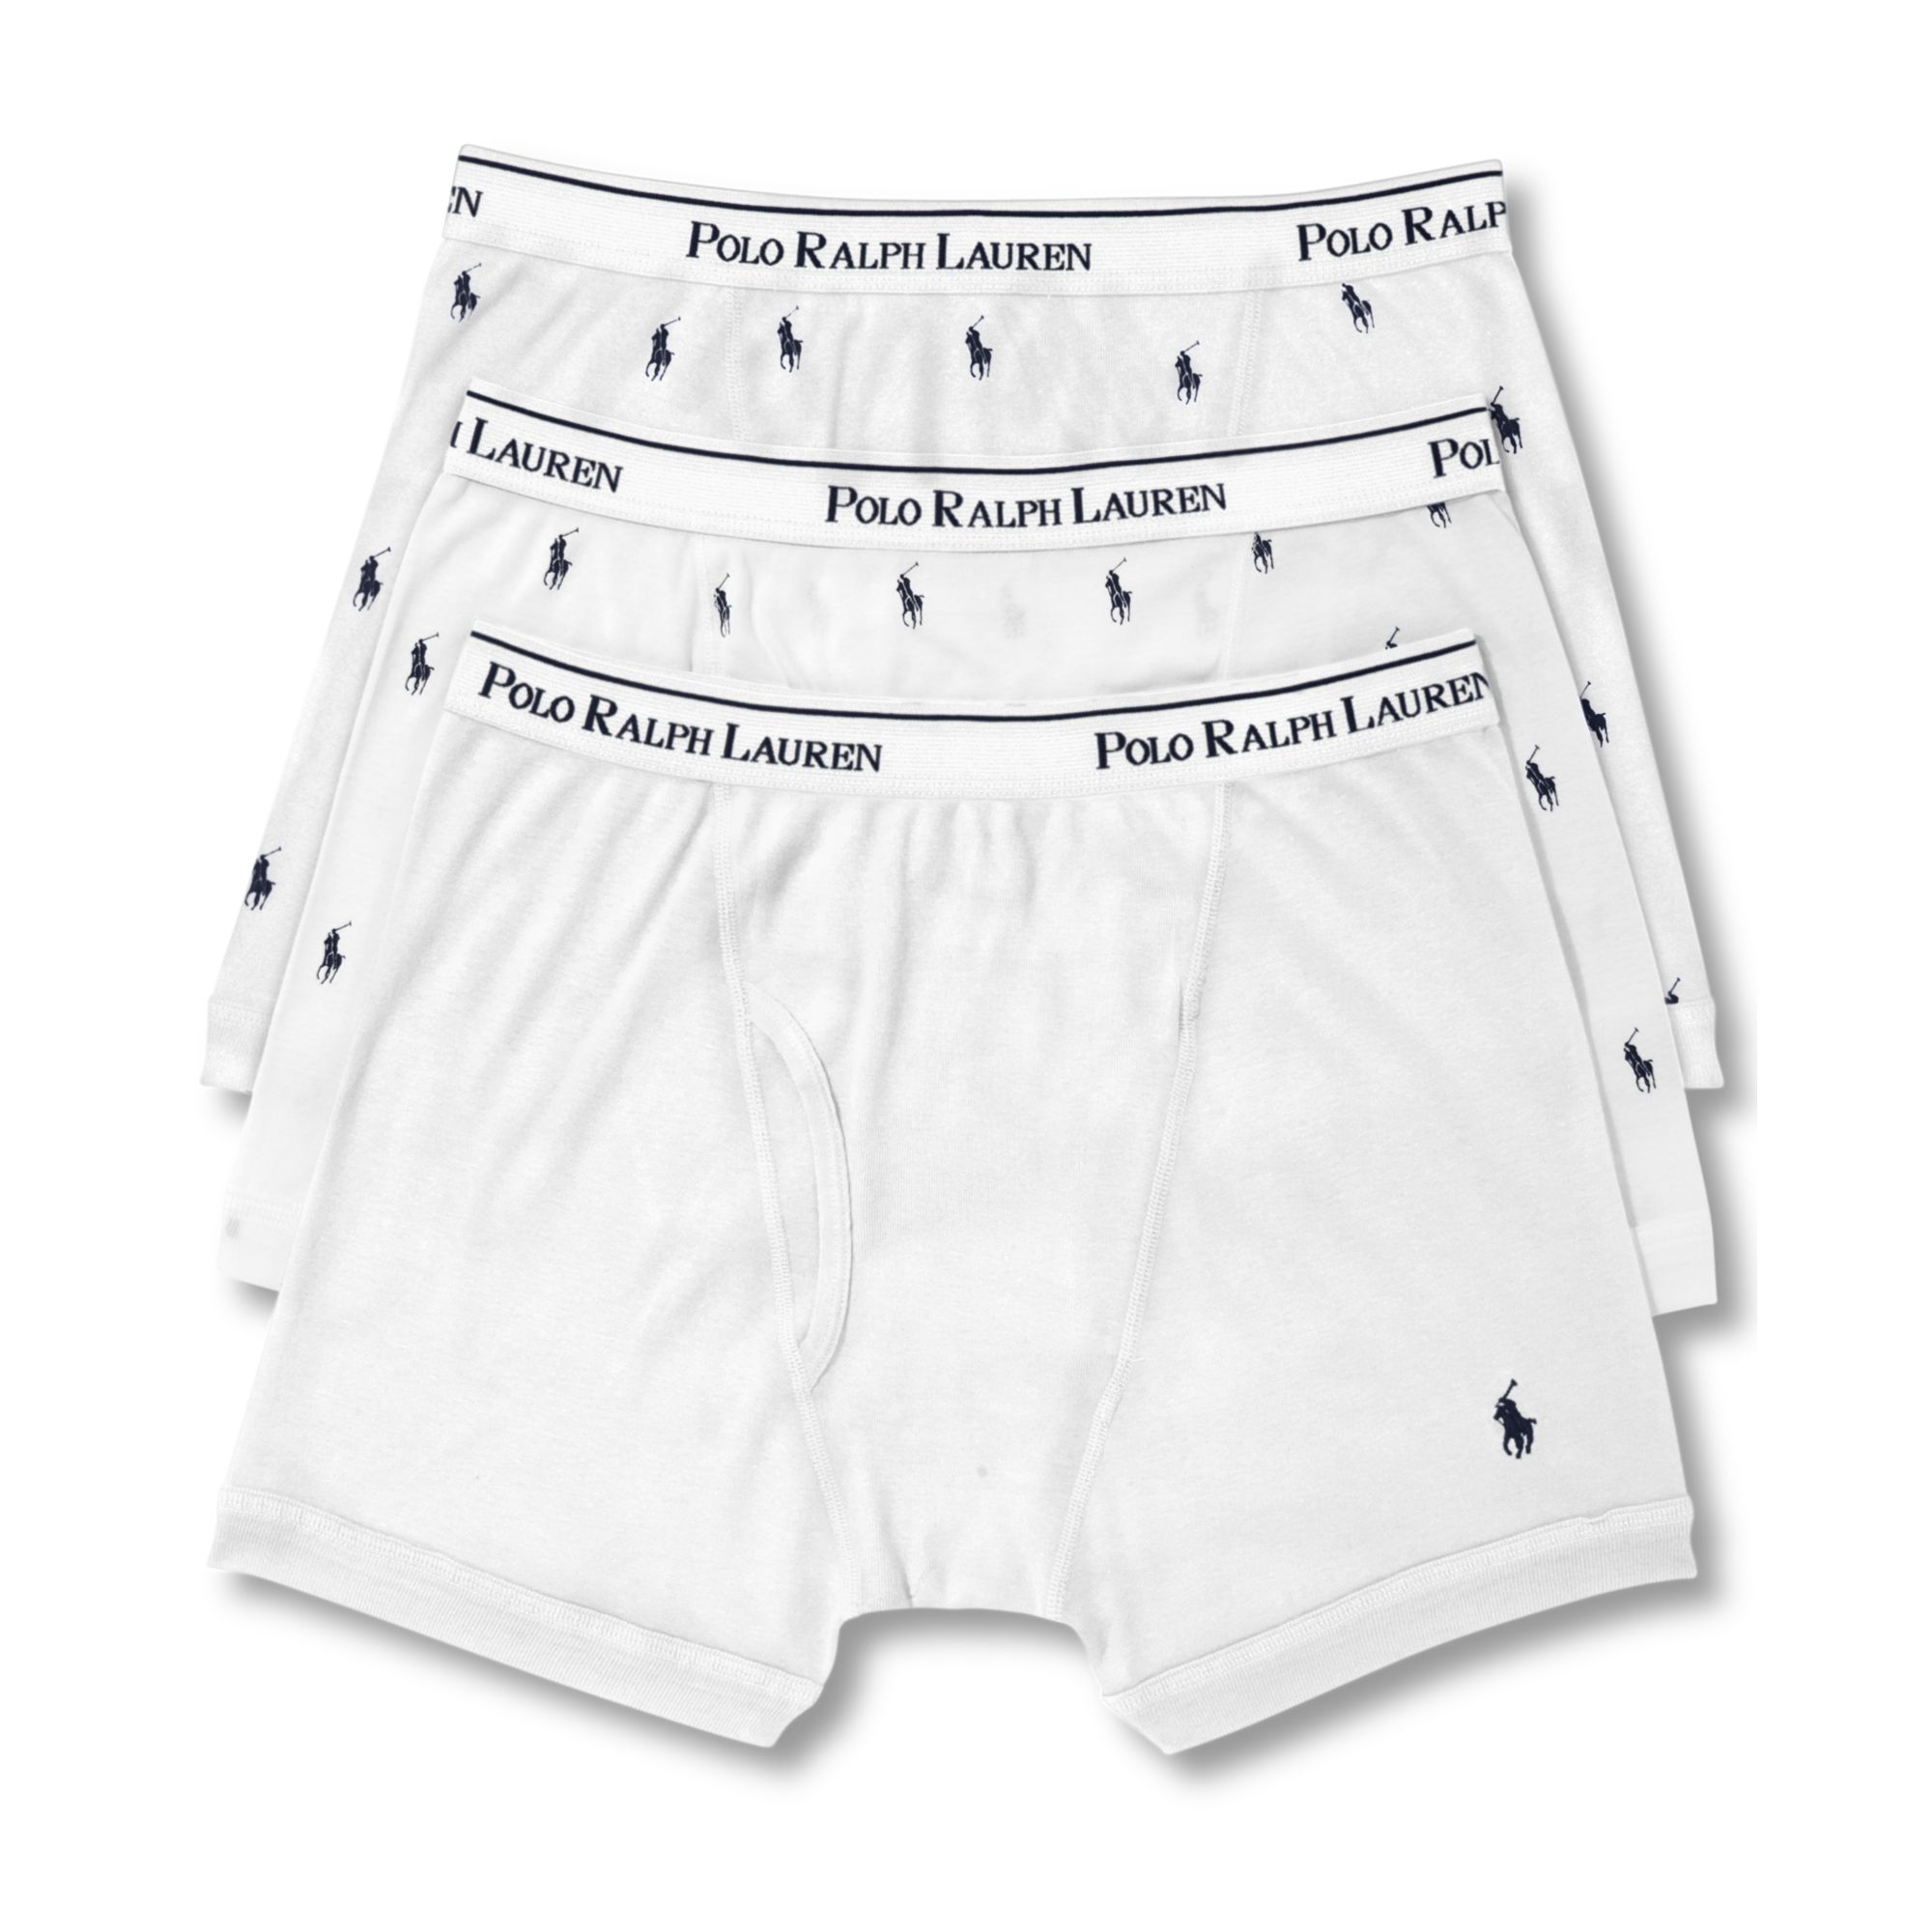 polo ralph lauren boxer briefs 3 pack in white for men lyst. Black Bedroom Furniture Sets. Home Design Ideas